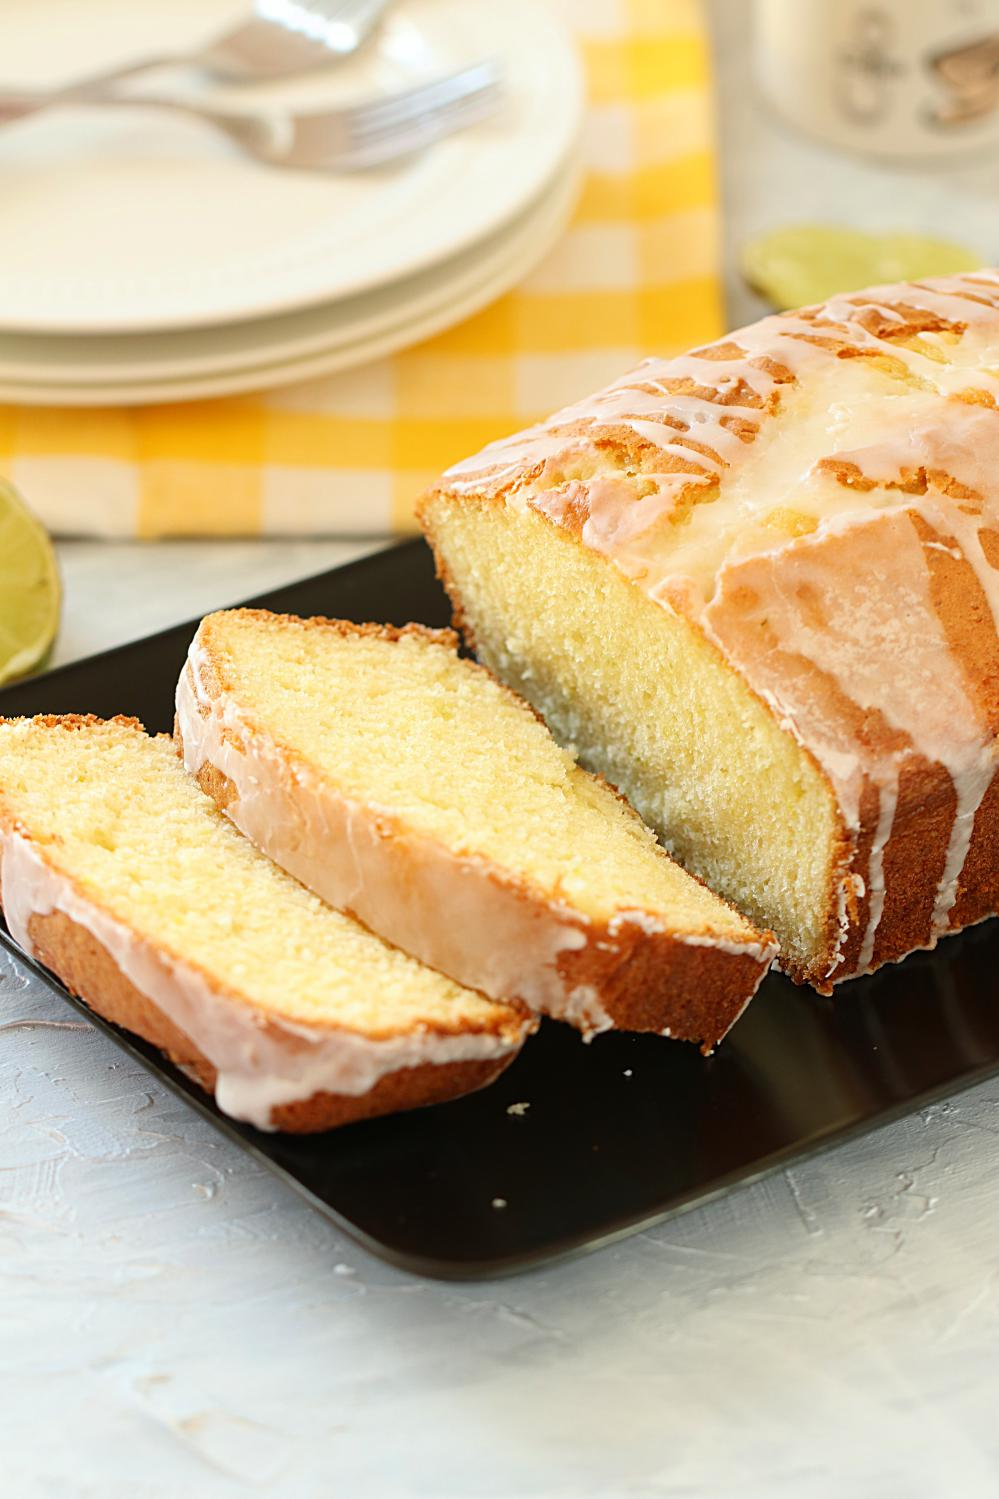 Glazed Lemon Loaf Cake